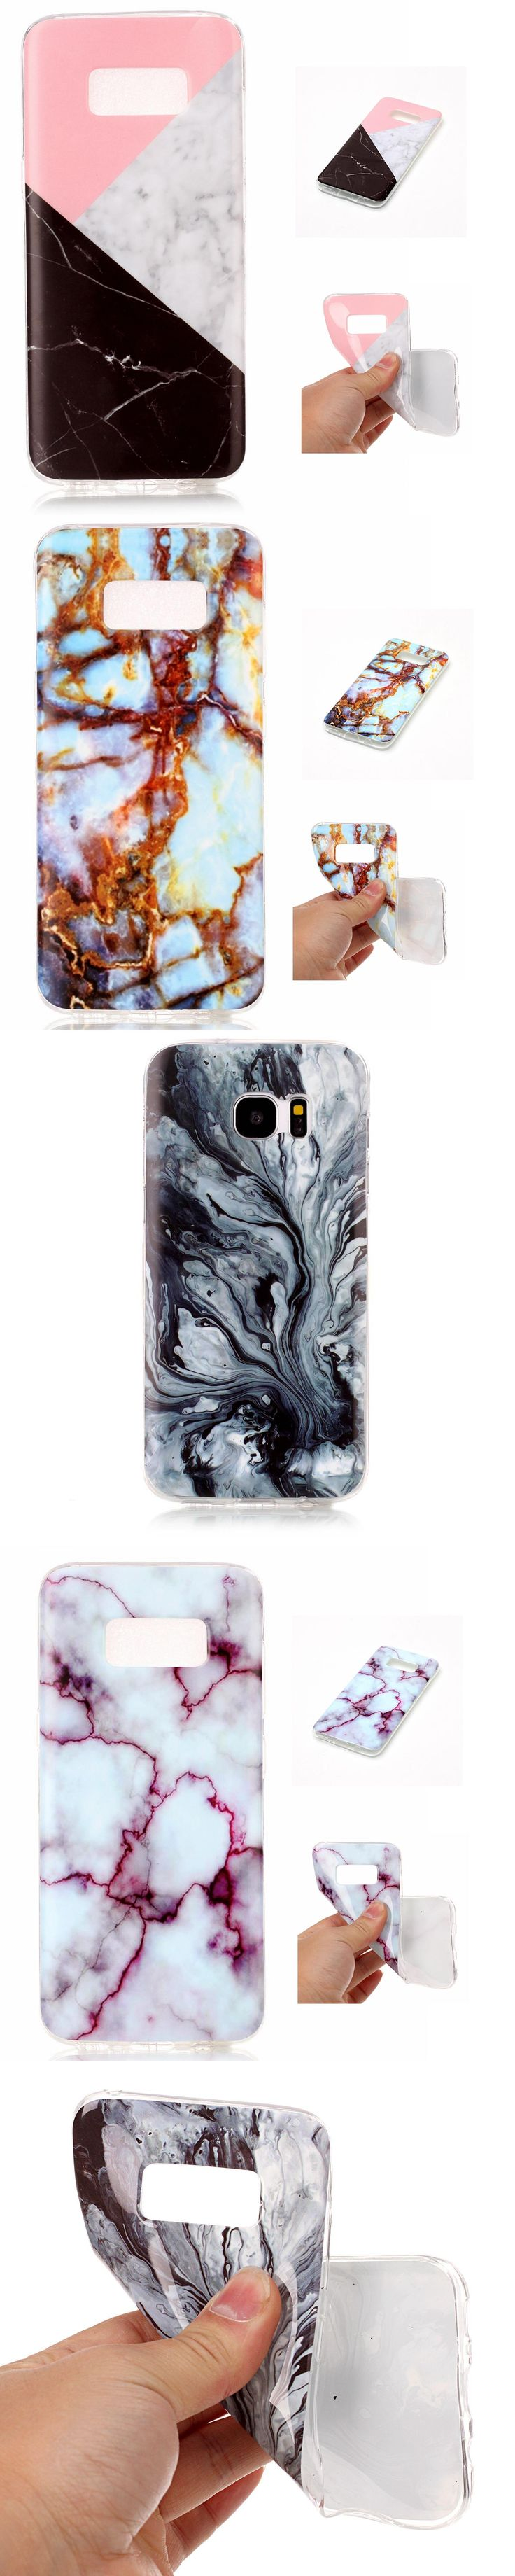 Fashion IMD Marble Cover Coque For Samsung Galaxy S5 S6 S7 S8 edge S6Edge Fundas Classic Black White Marble Painted Phone Cases